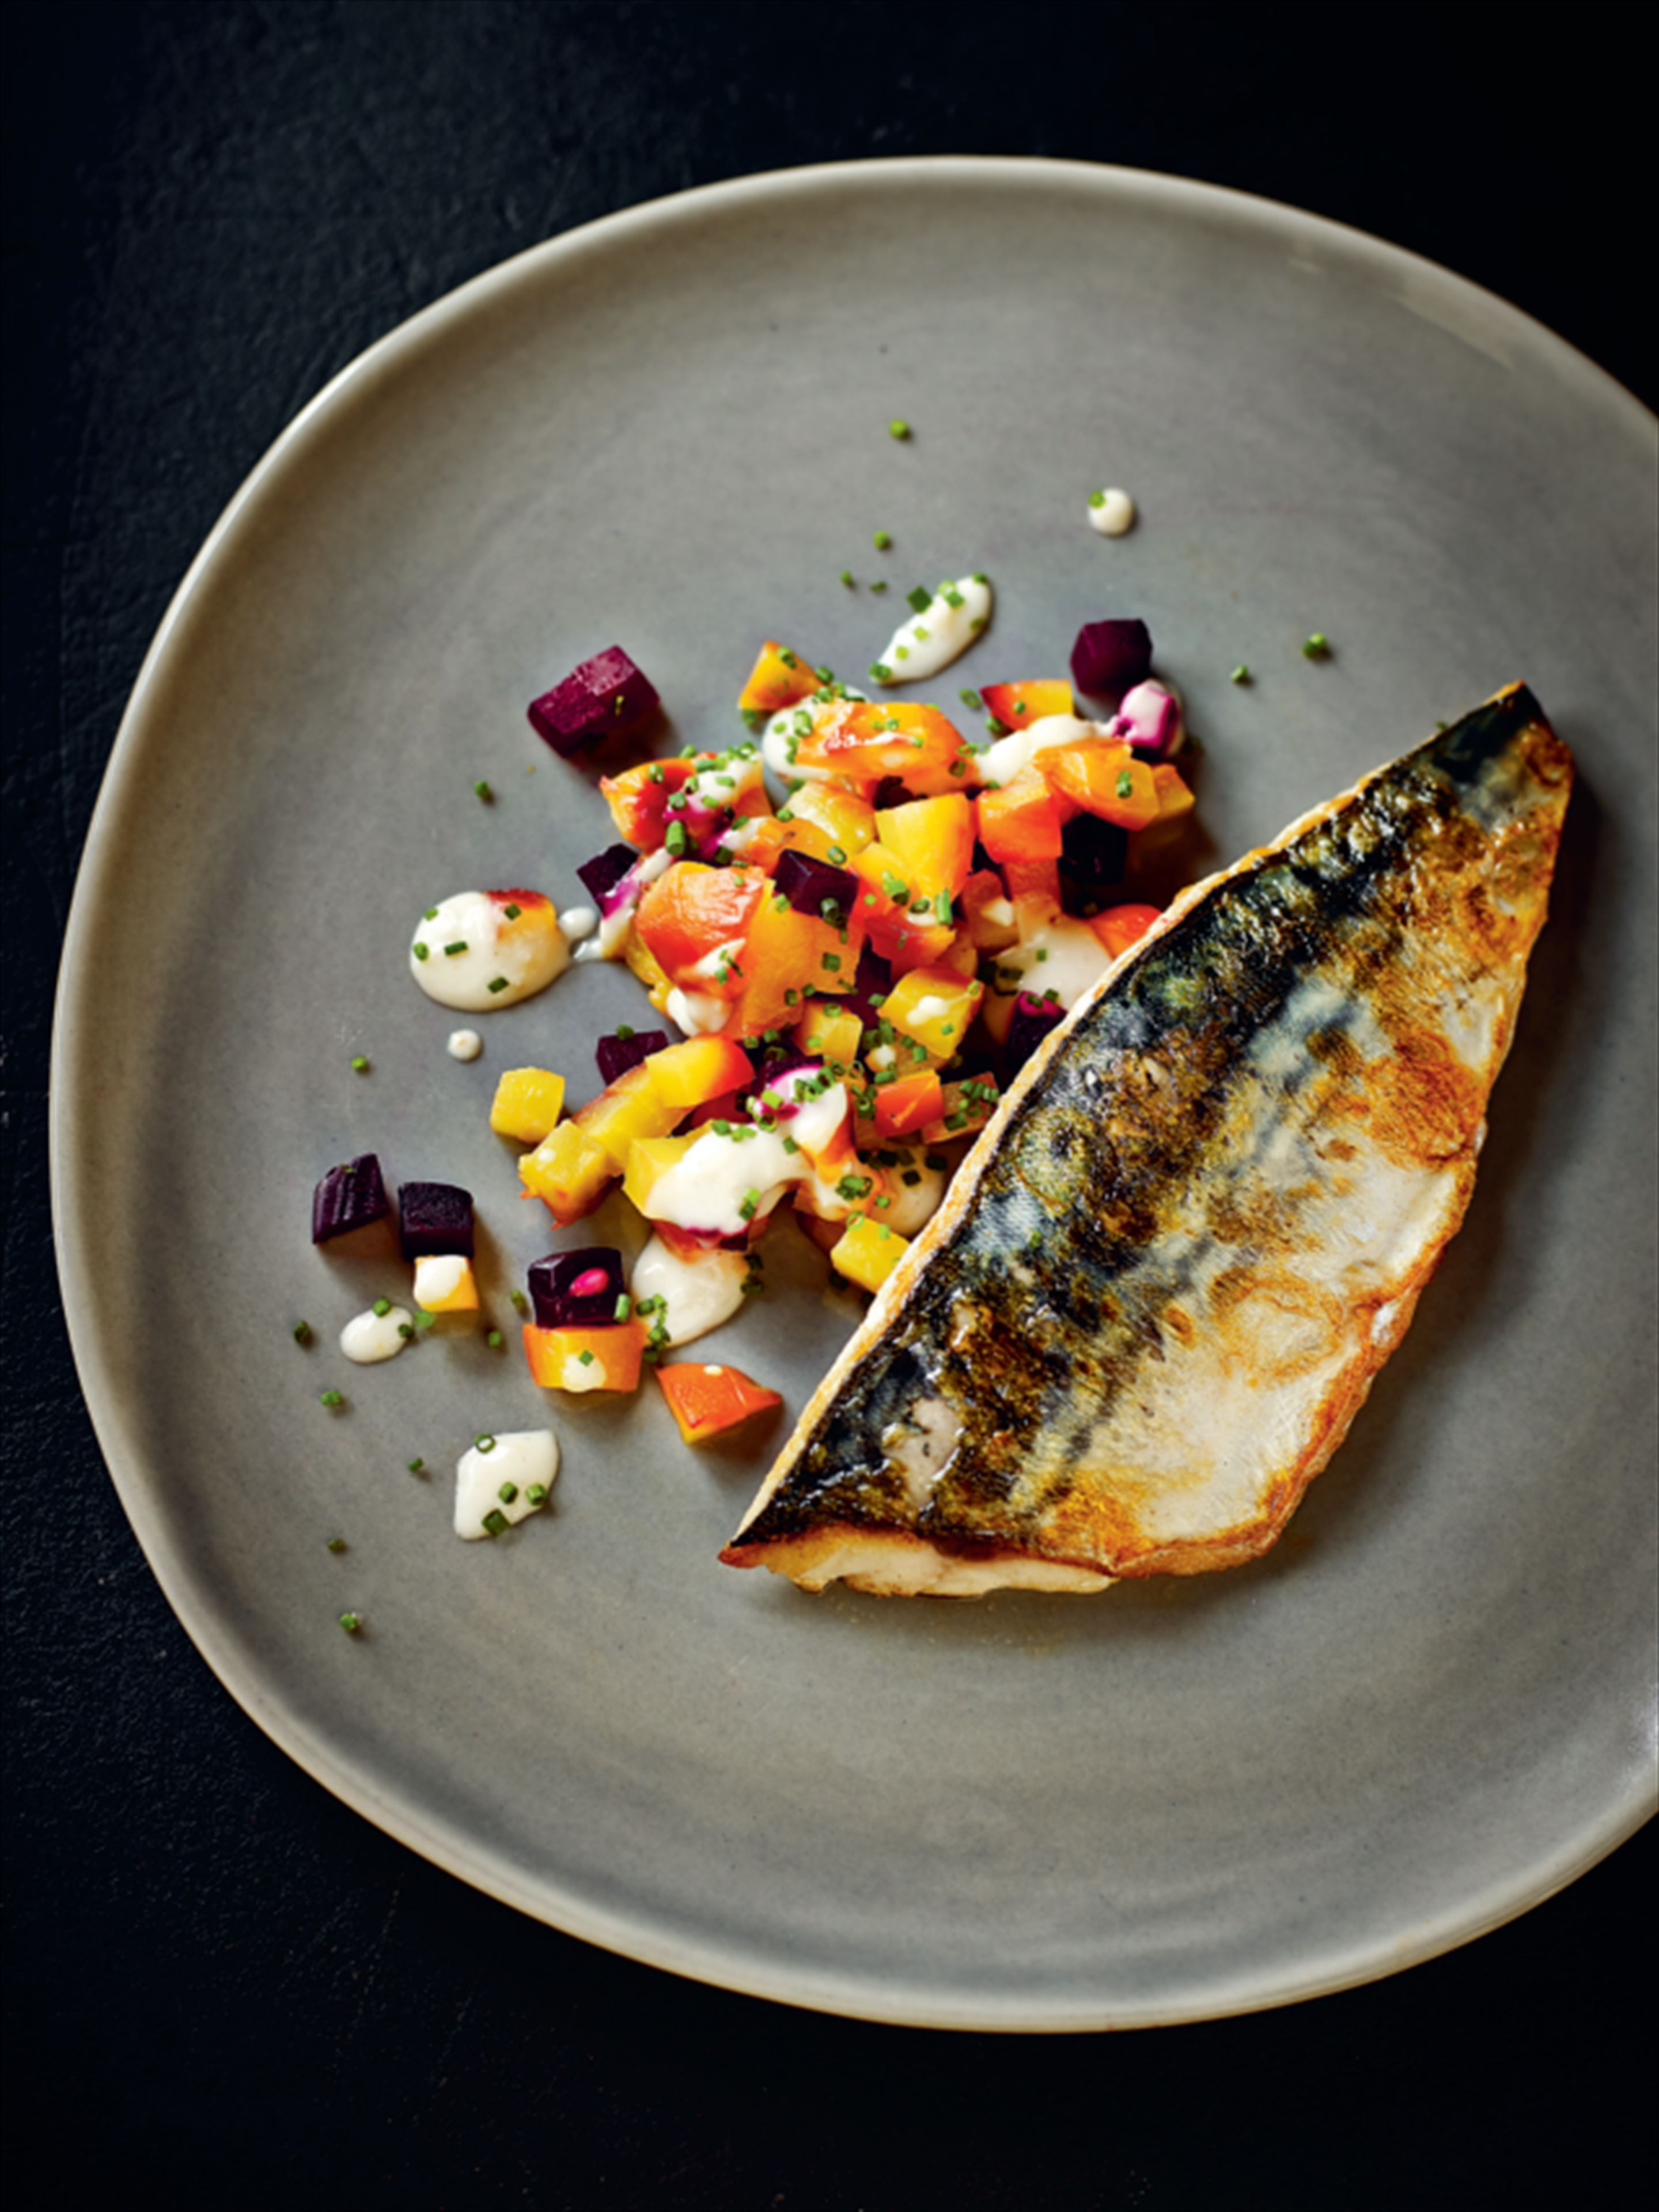 Fried mackerel fillets on beetroot-horseradish crush